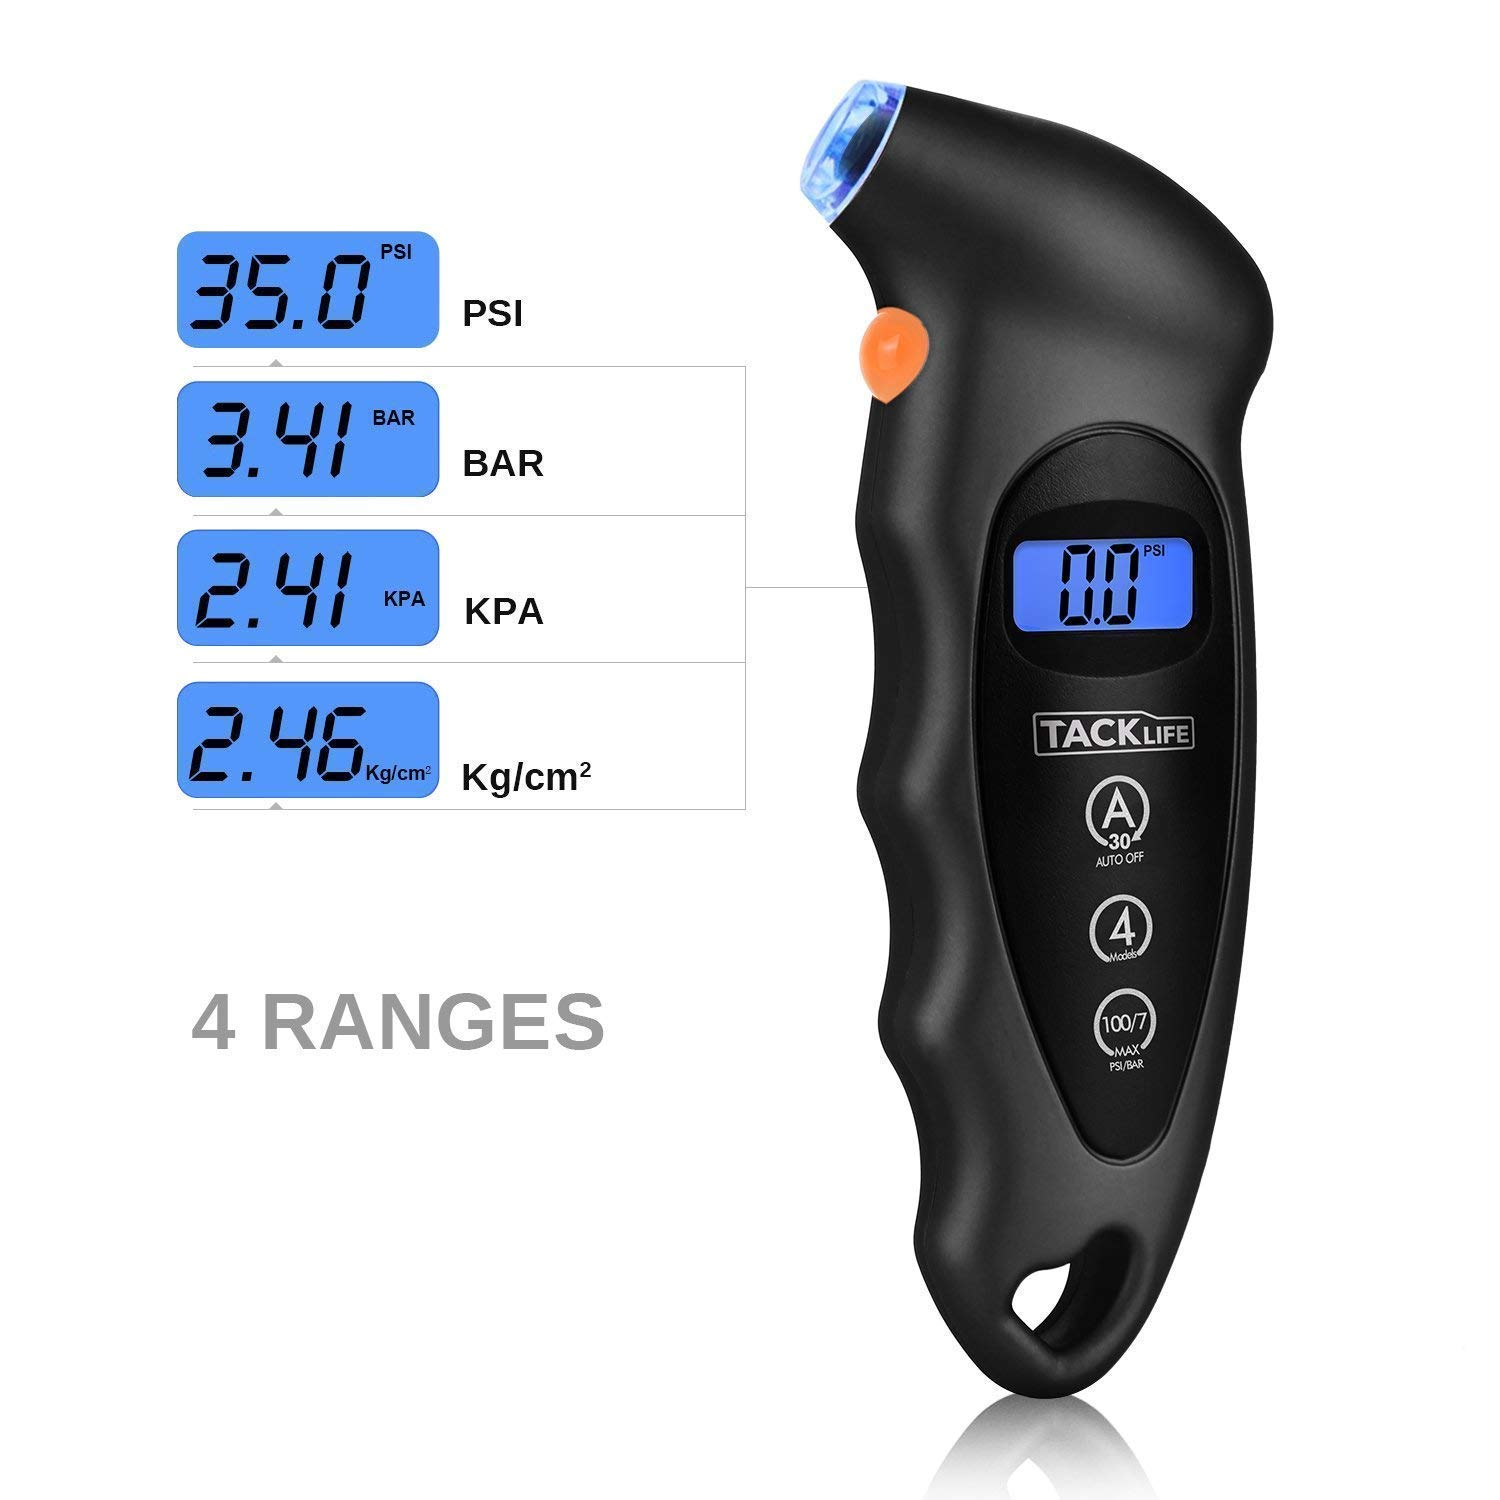 TG01 Tacklife Tire Pressure Gauge 150 PSI 4 Settings with Backlight LCD Display and Non-Slip Grip Digital Tire Gauge for Cars and Motorcycles